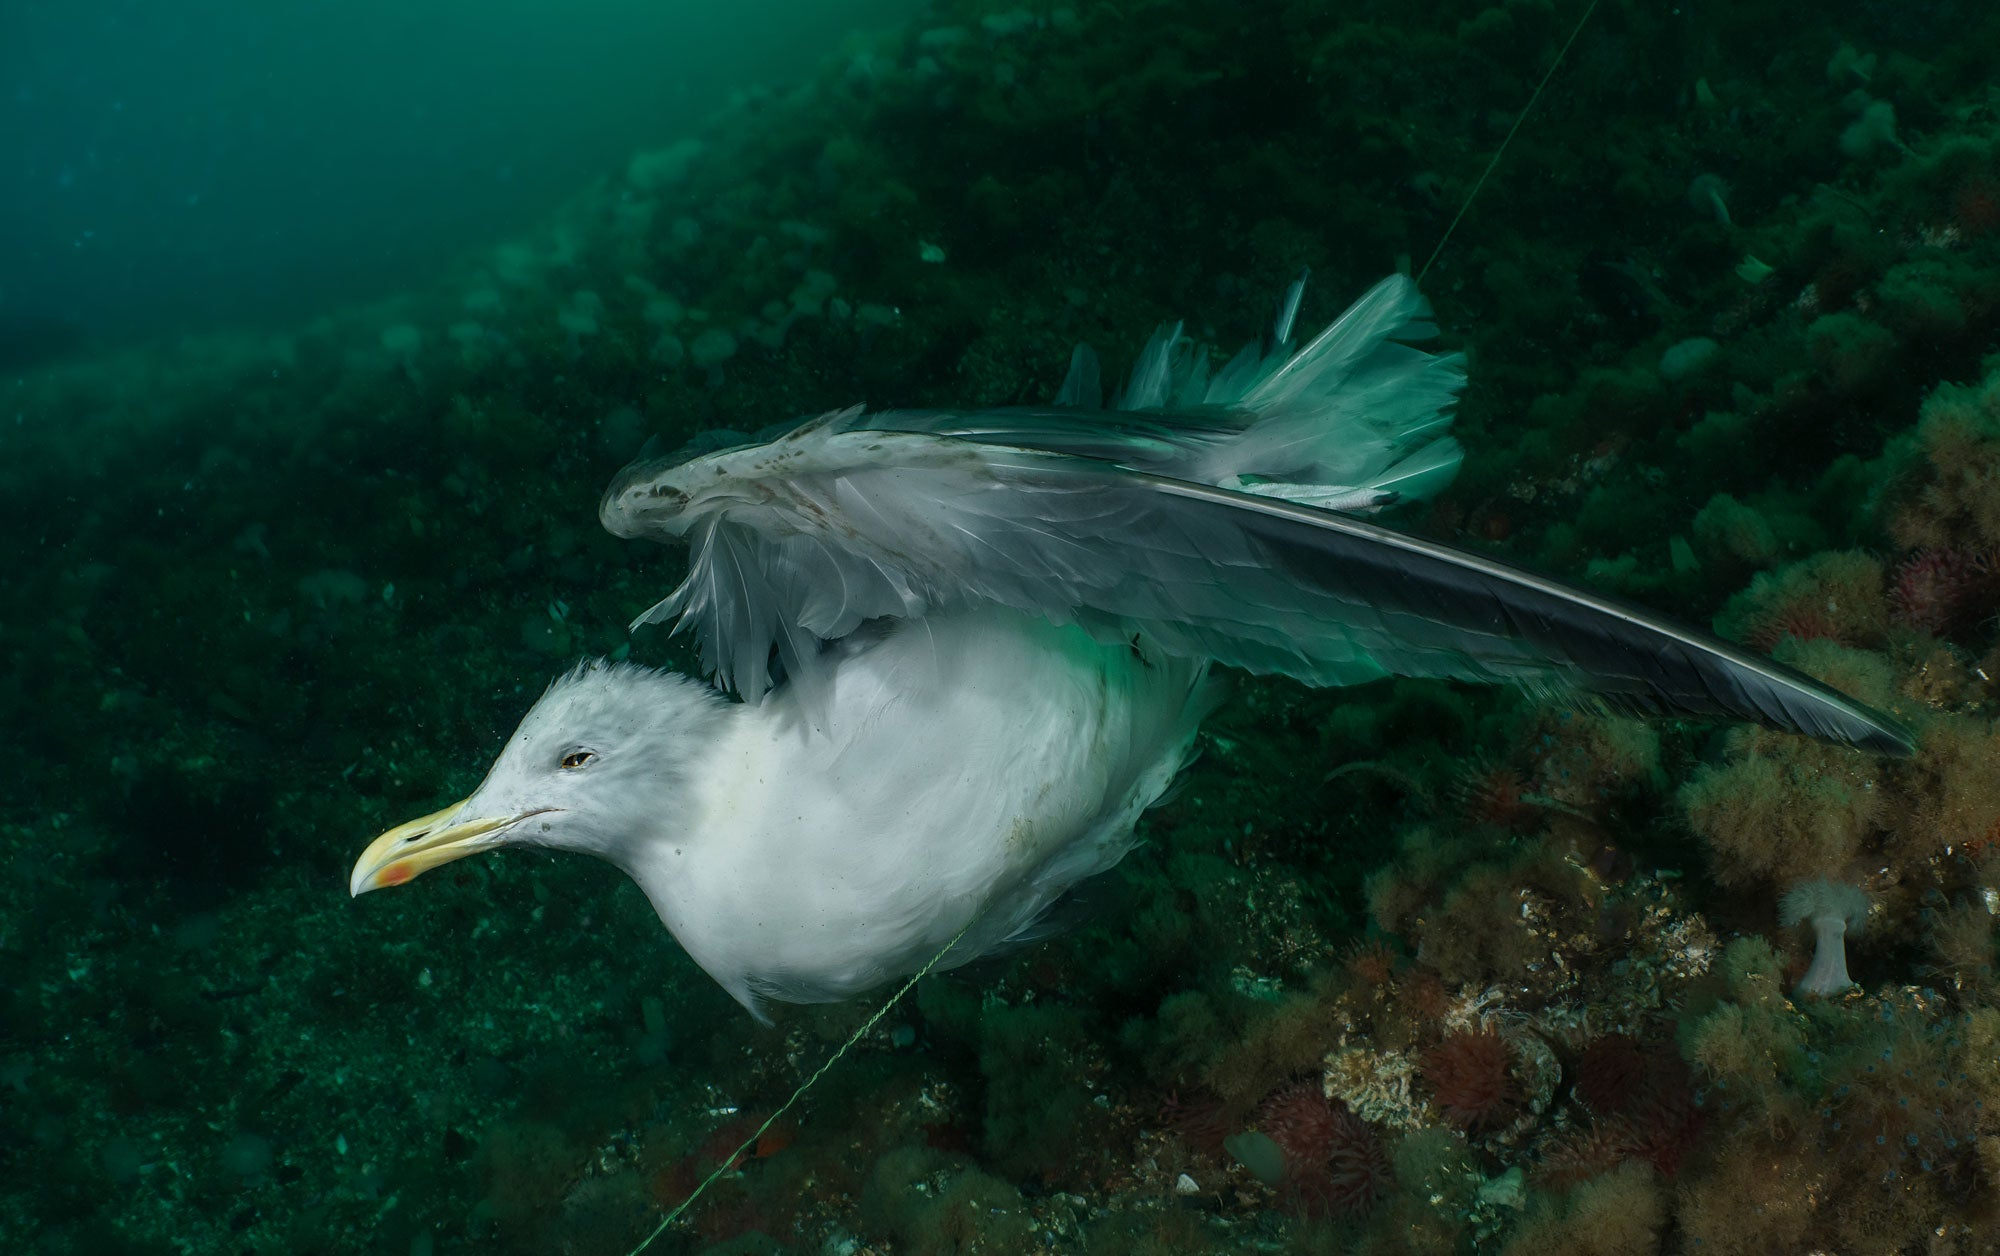 A gull caught on a 'ghost' fishing line (lost or discarded gear), Saltstraumen, Norway